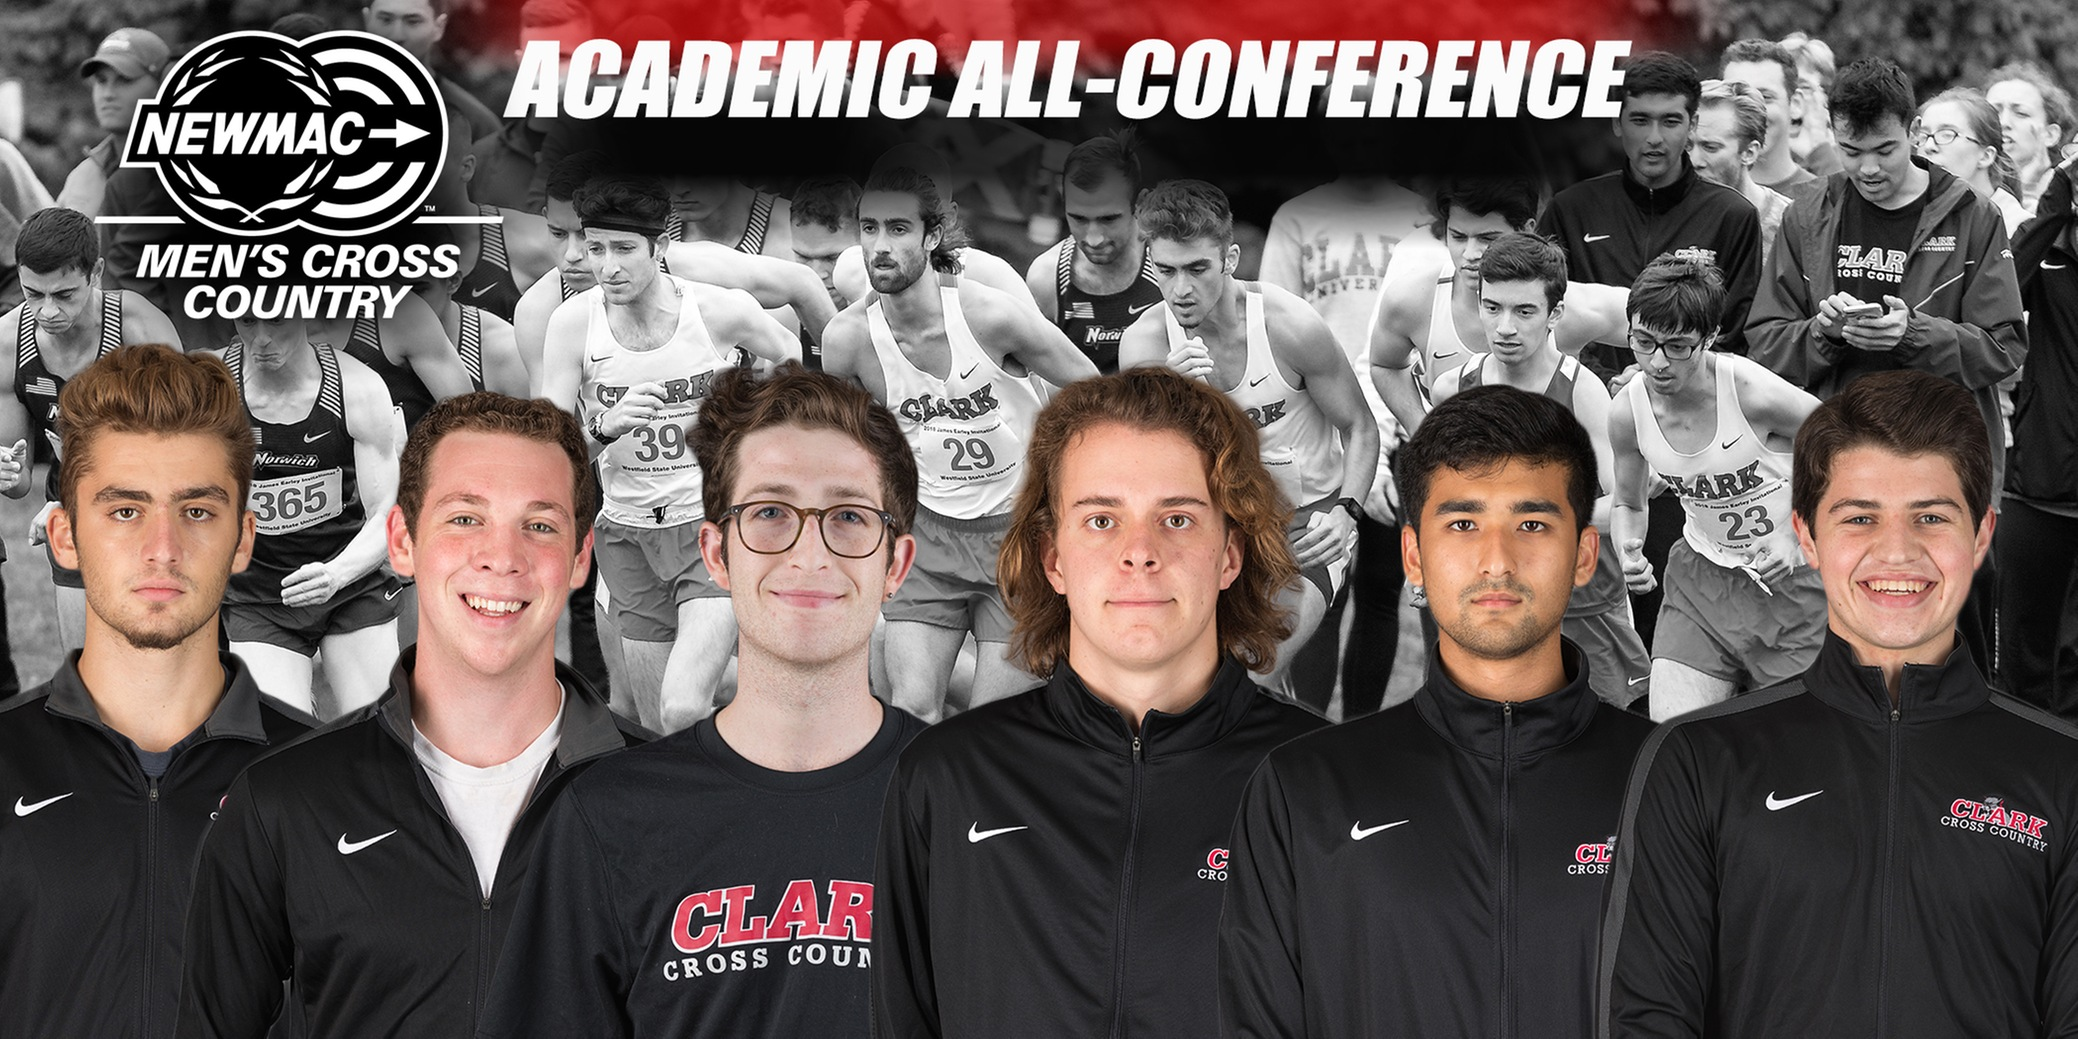 Men's Cross Country Places Six on 2018 NEWMAC Academic All-Conference Team